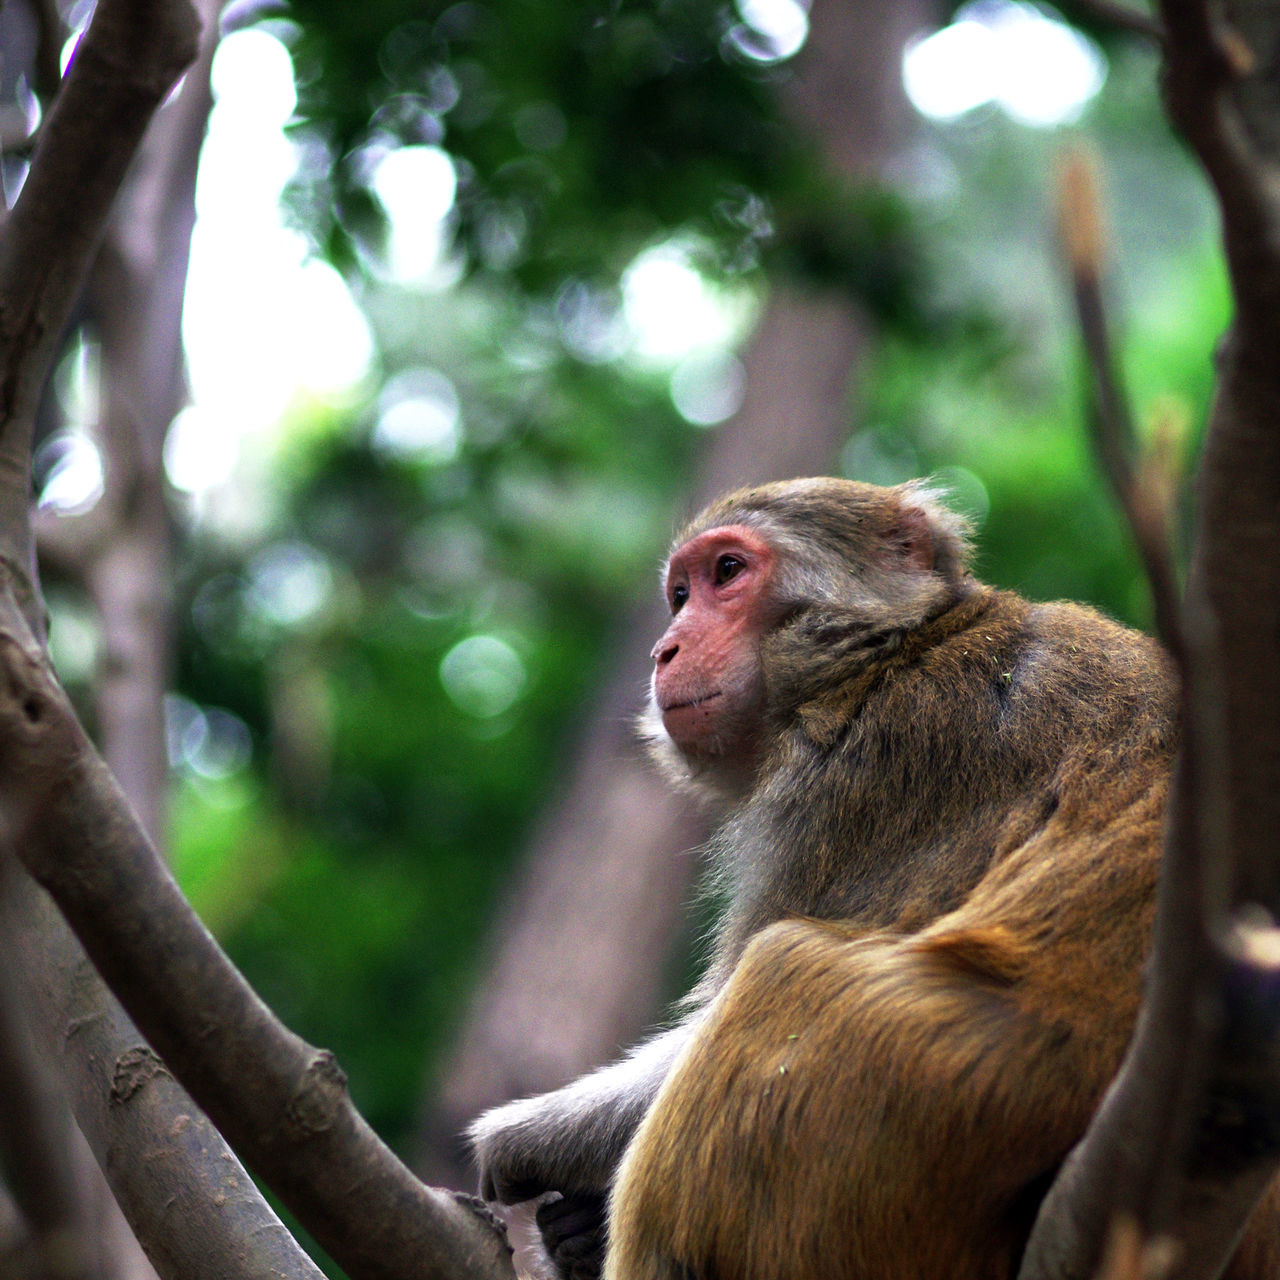 monkey, animals in the wild, animal themes, focus on foreground, animal wildlife, day, one animal, mammal, no people, outdoors, nature, tree, close-up, baboon, japanese macaque